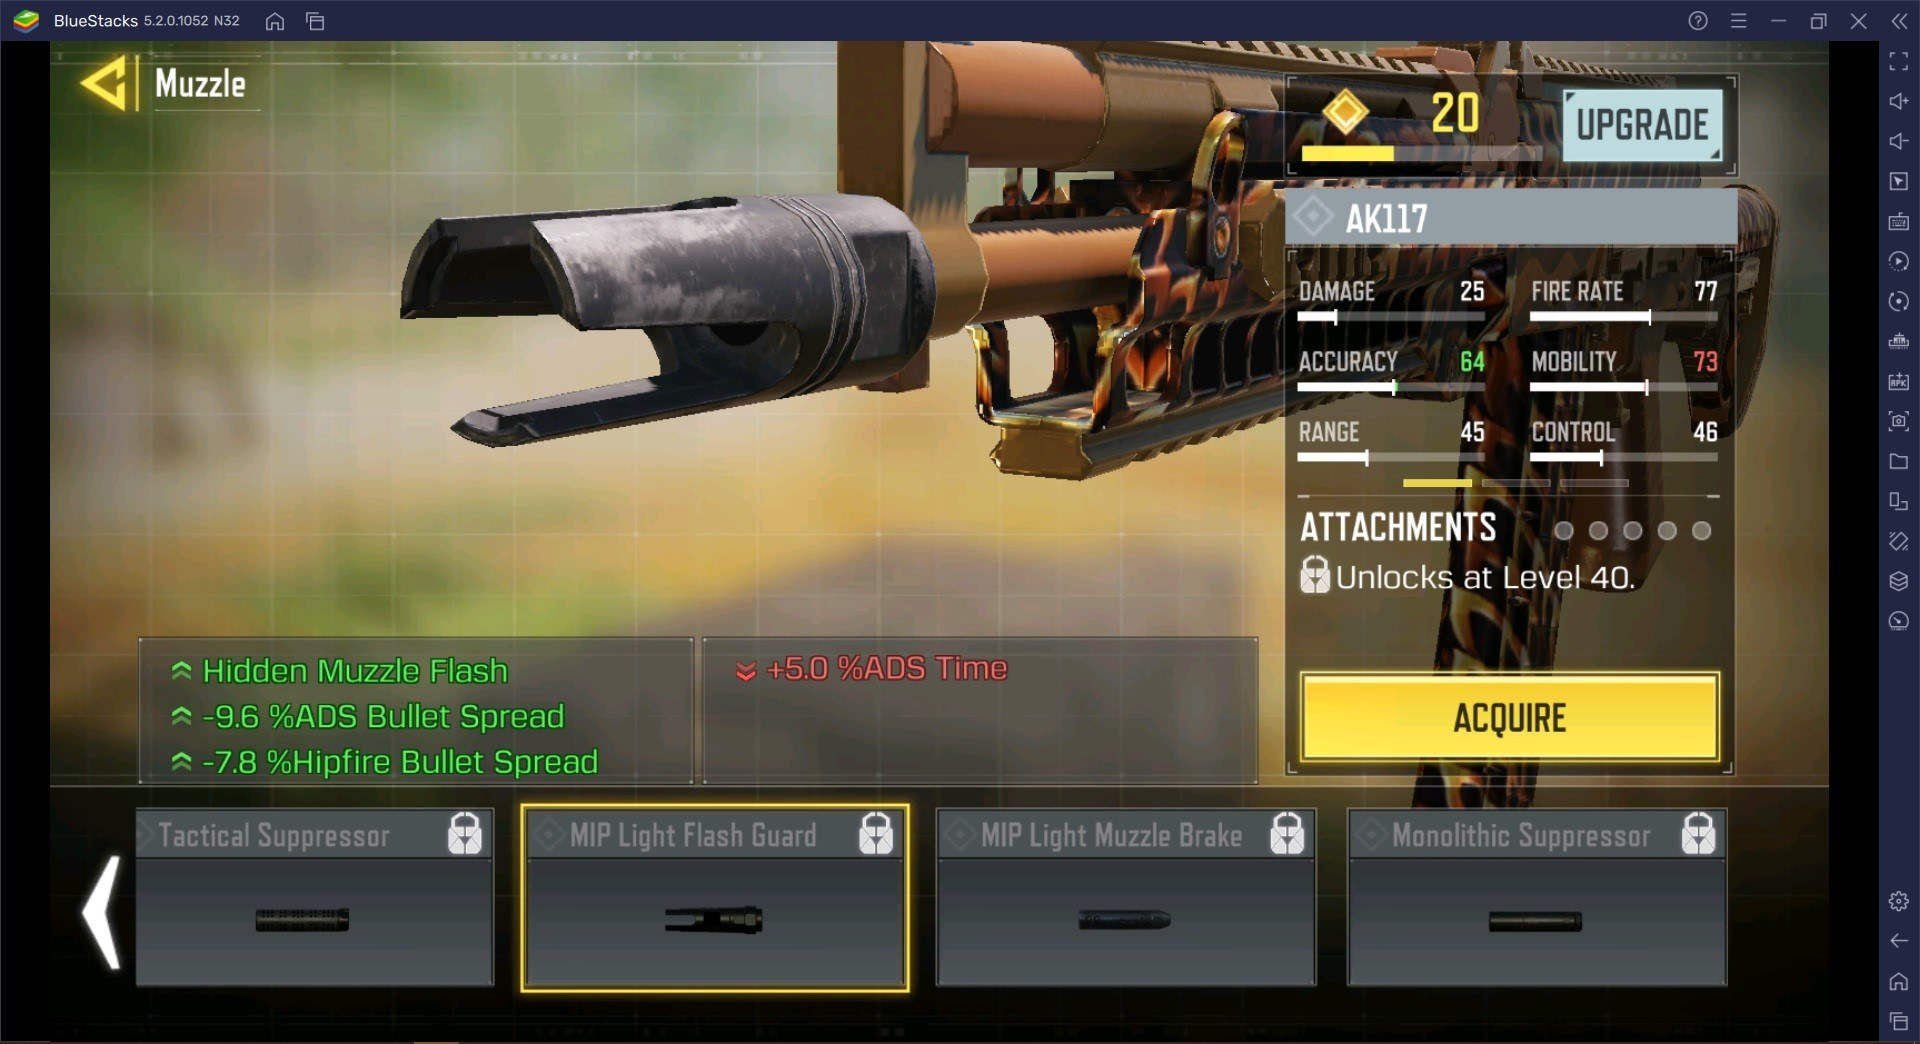 Call of Duty: Mobile AK117 Weapon Guide – Aged Like a Fine Wine